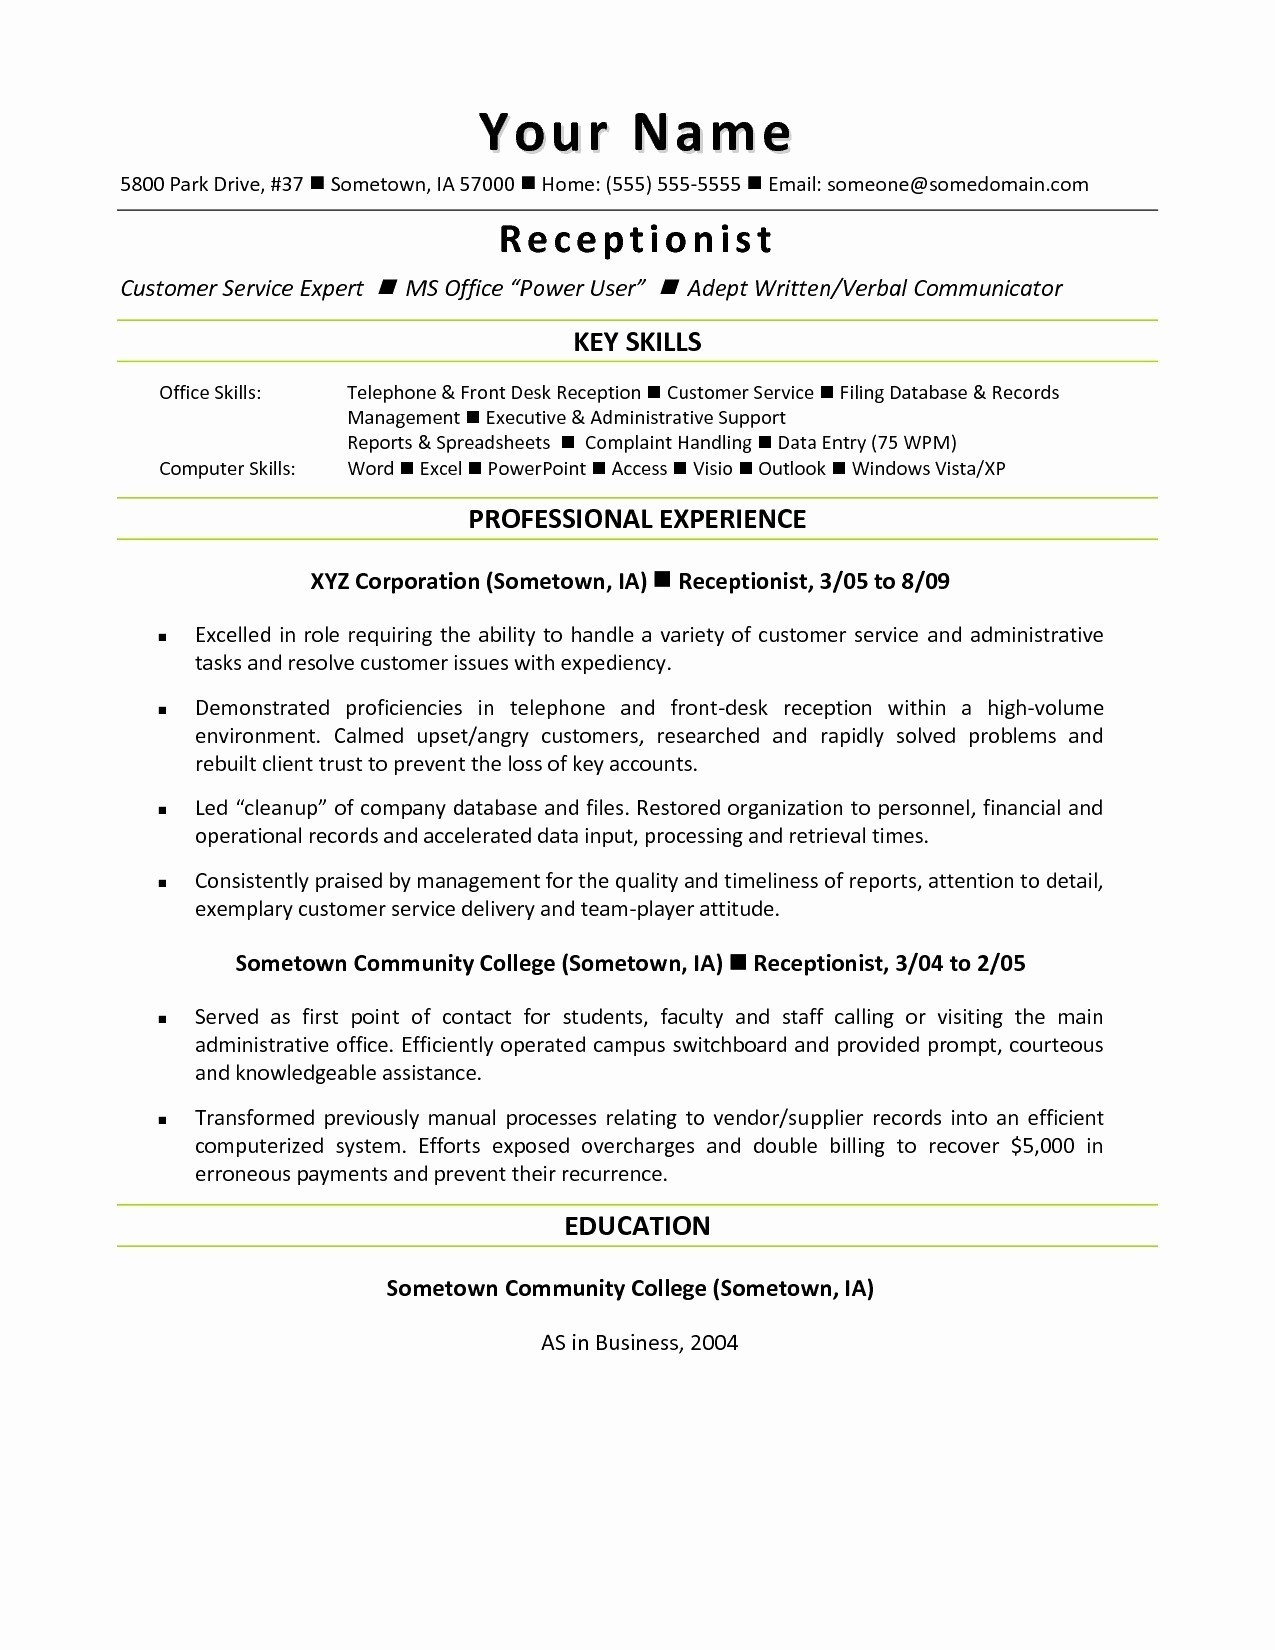 Words Skill - Resume Buzz Words Elegant Elegant Good Nursing Resume Elegant Nurse